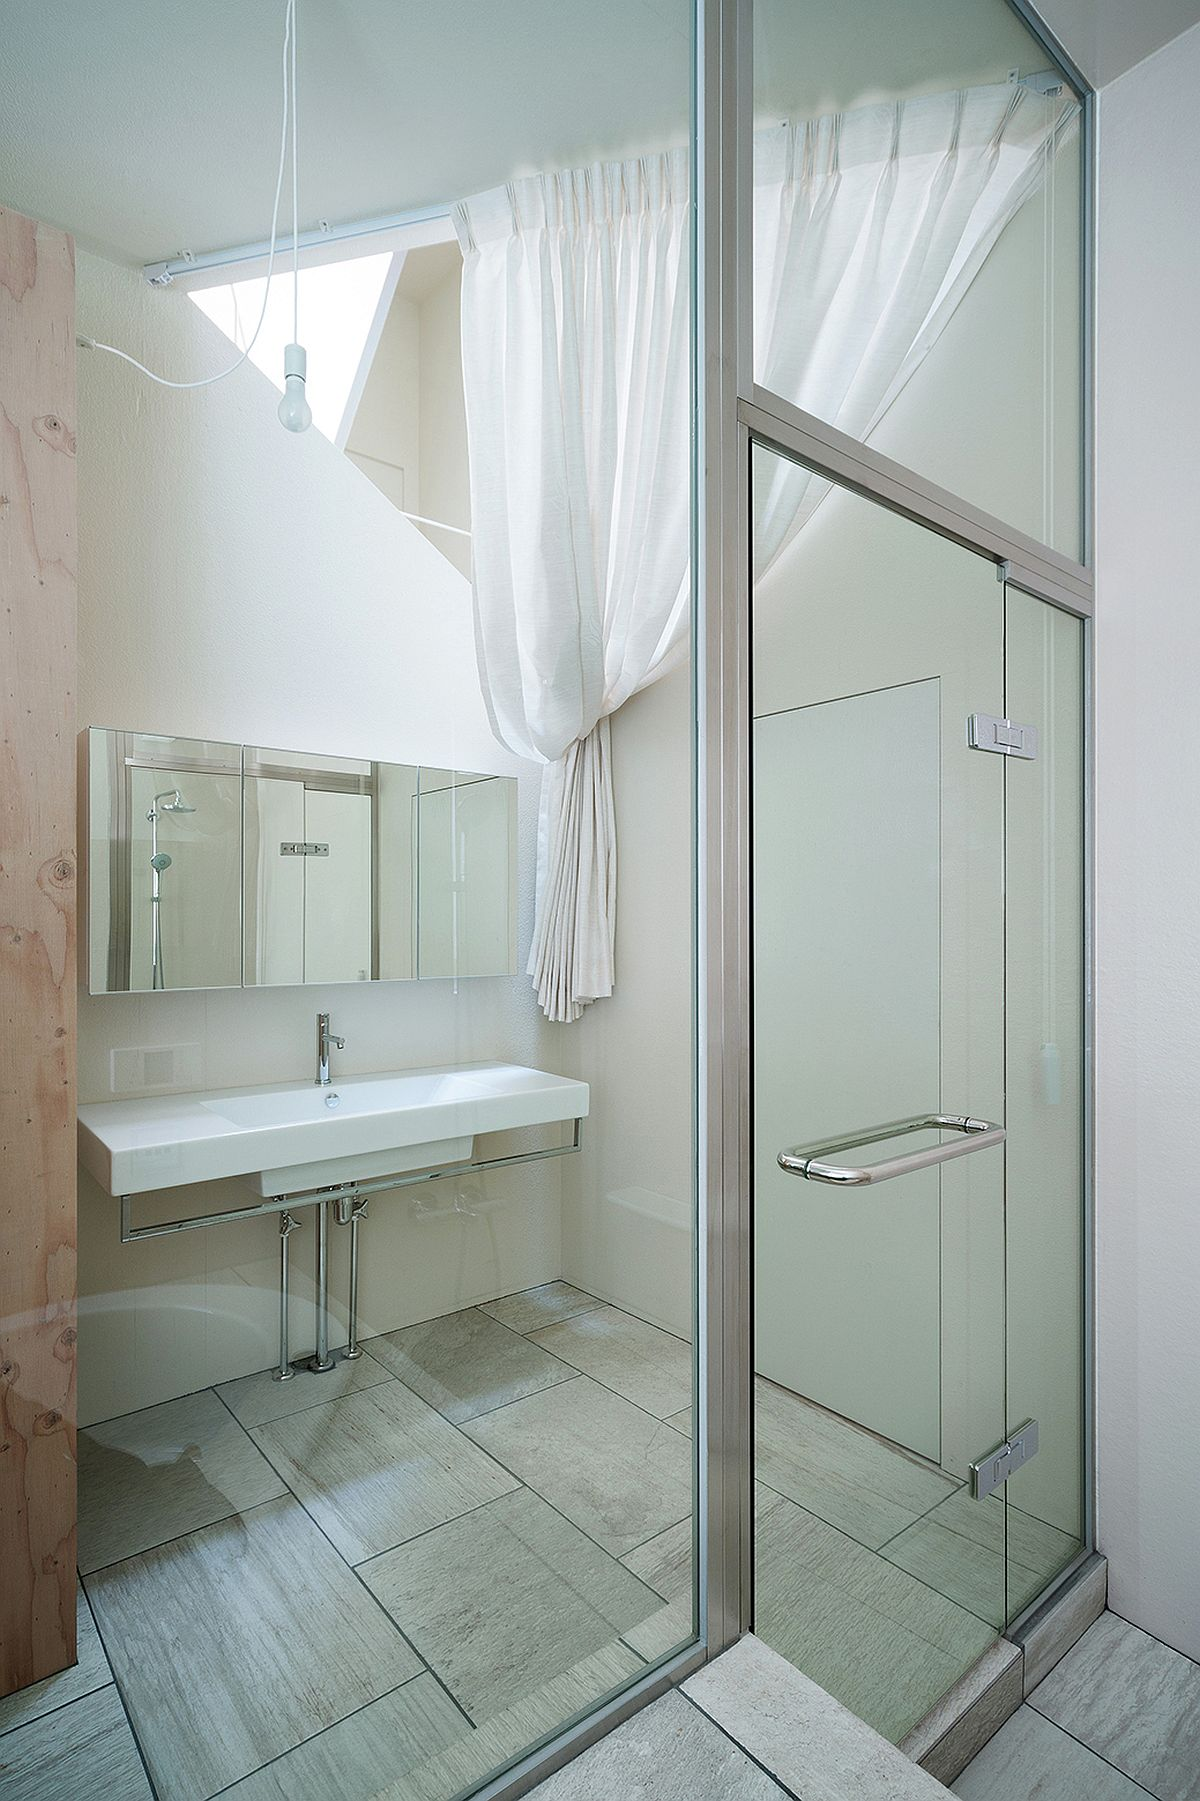 Triangular cut-out in the ceiling brings natural light into the small bathroom and shower area